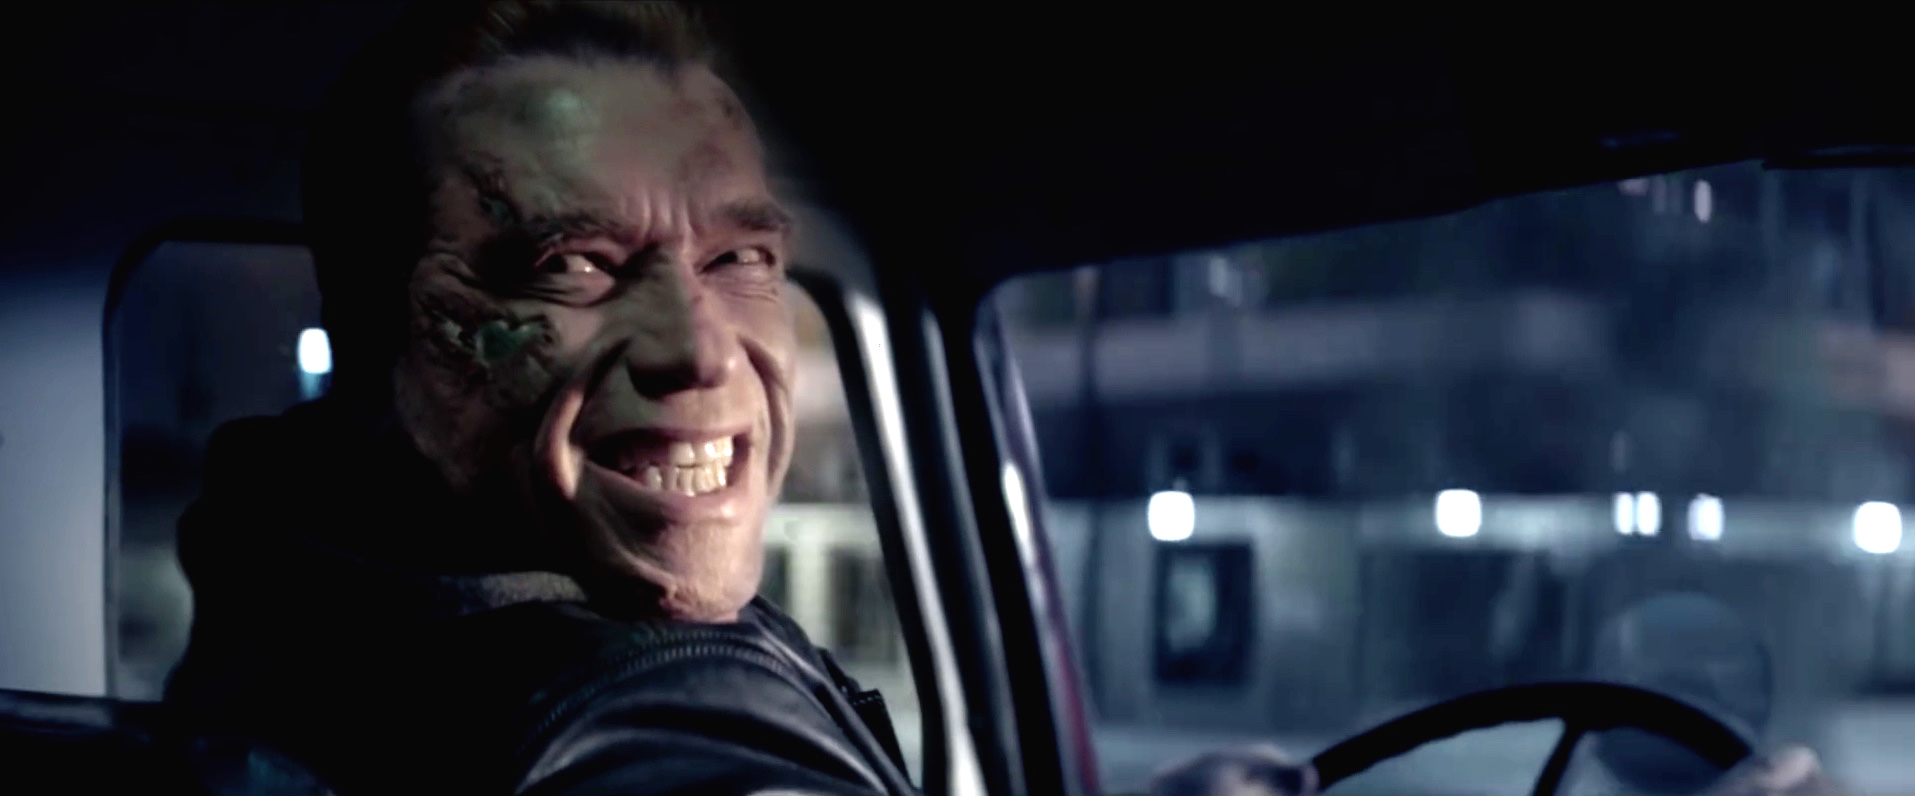 Even Terminator Genisys' director thinks its dumb trailer spoiled the movie